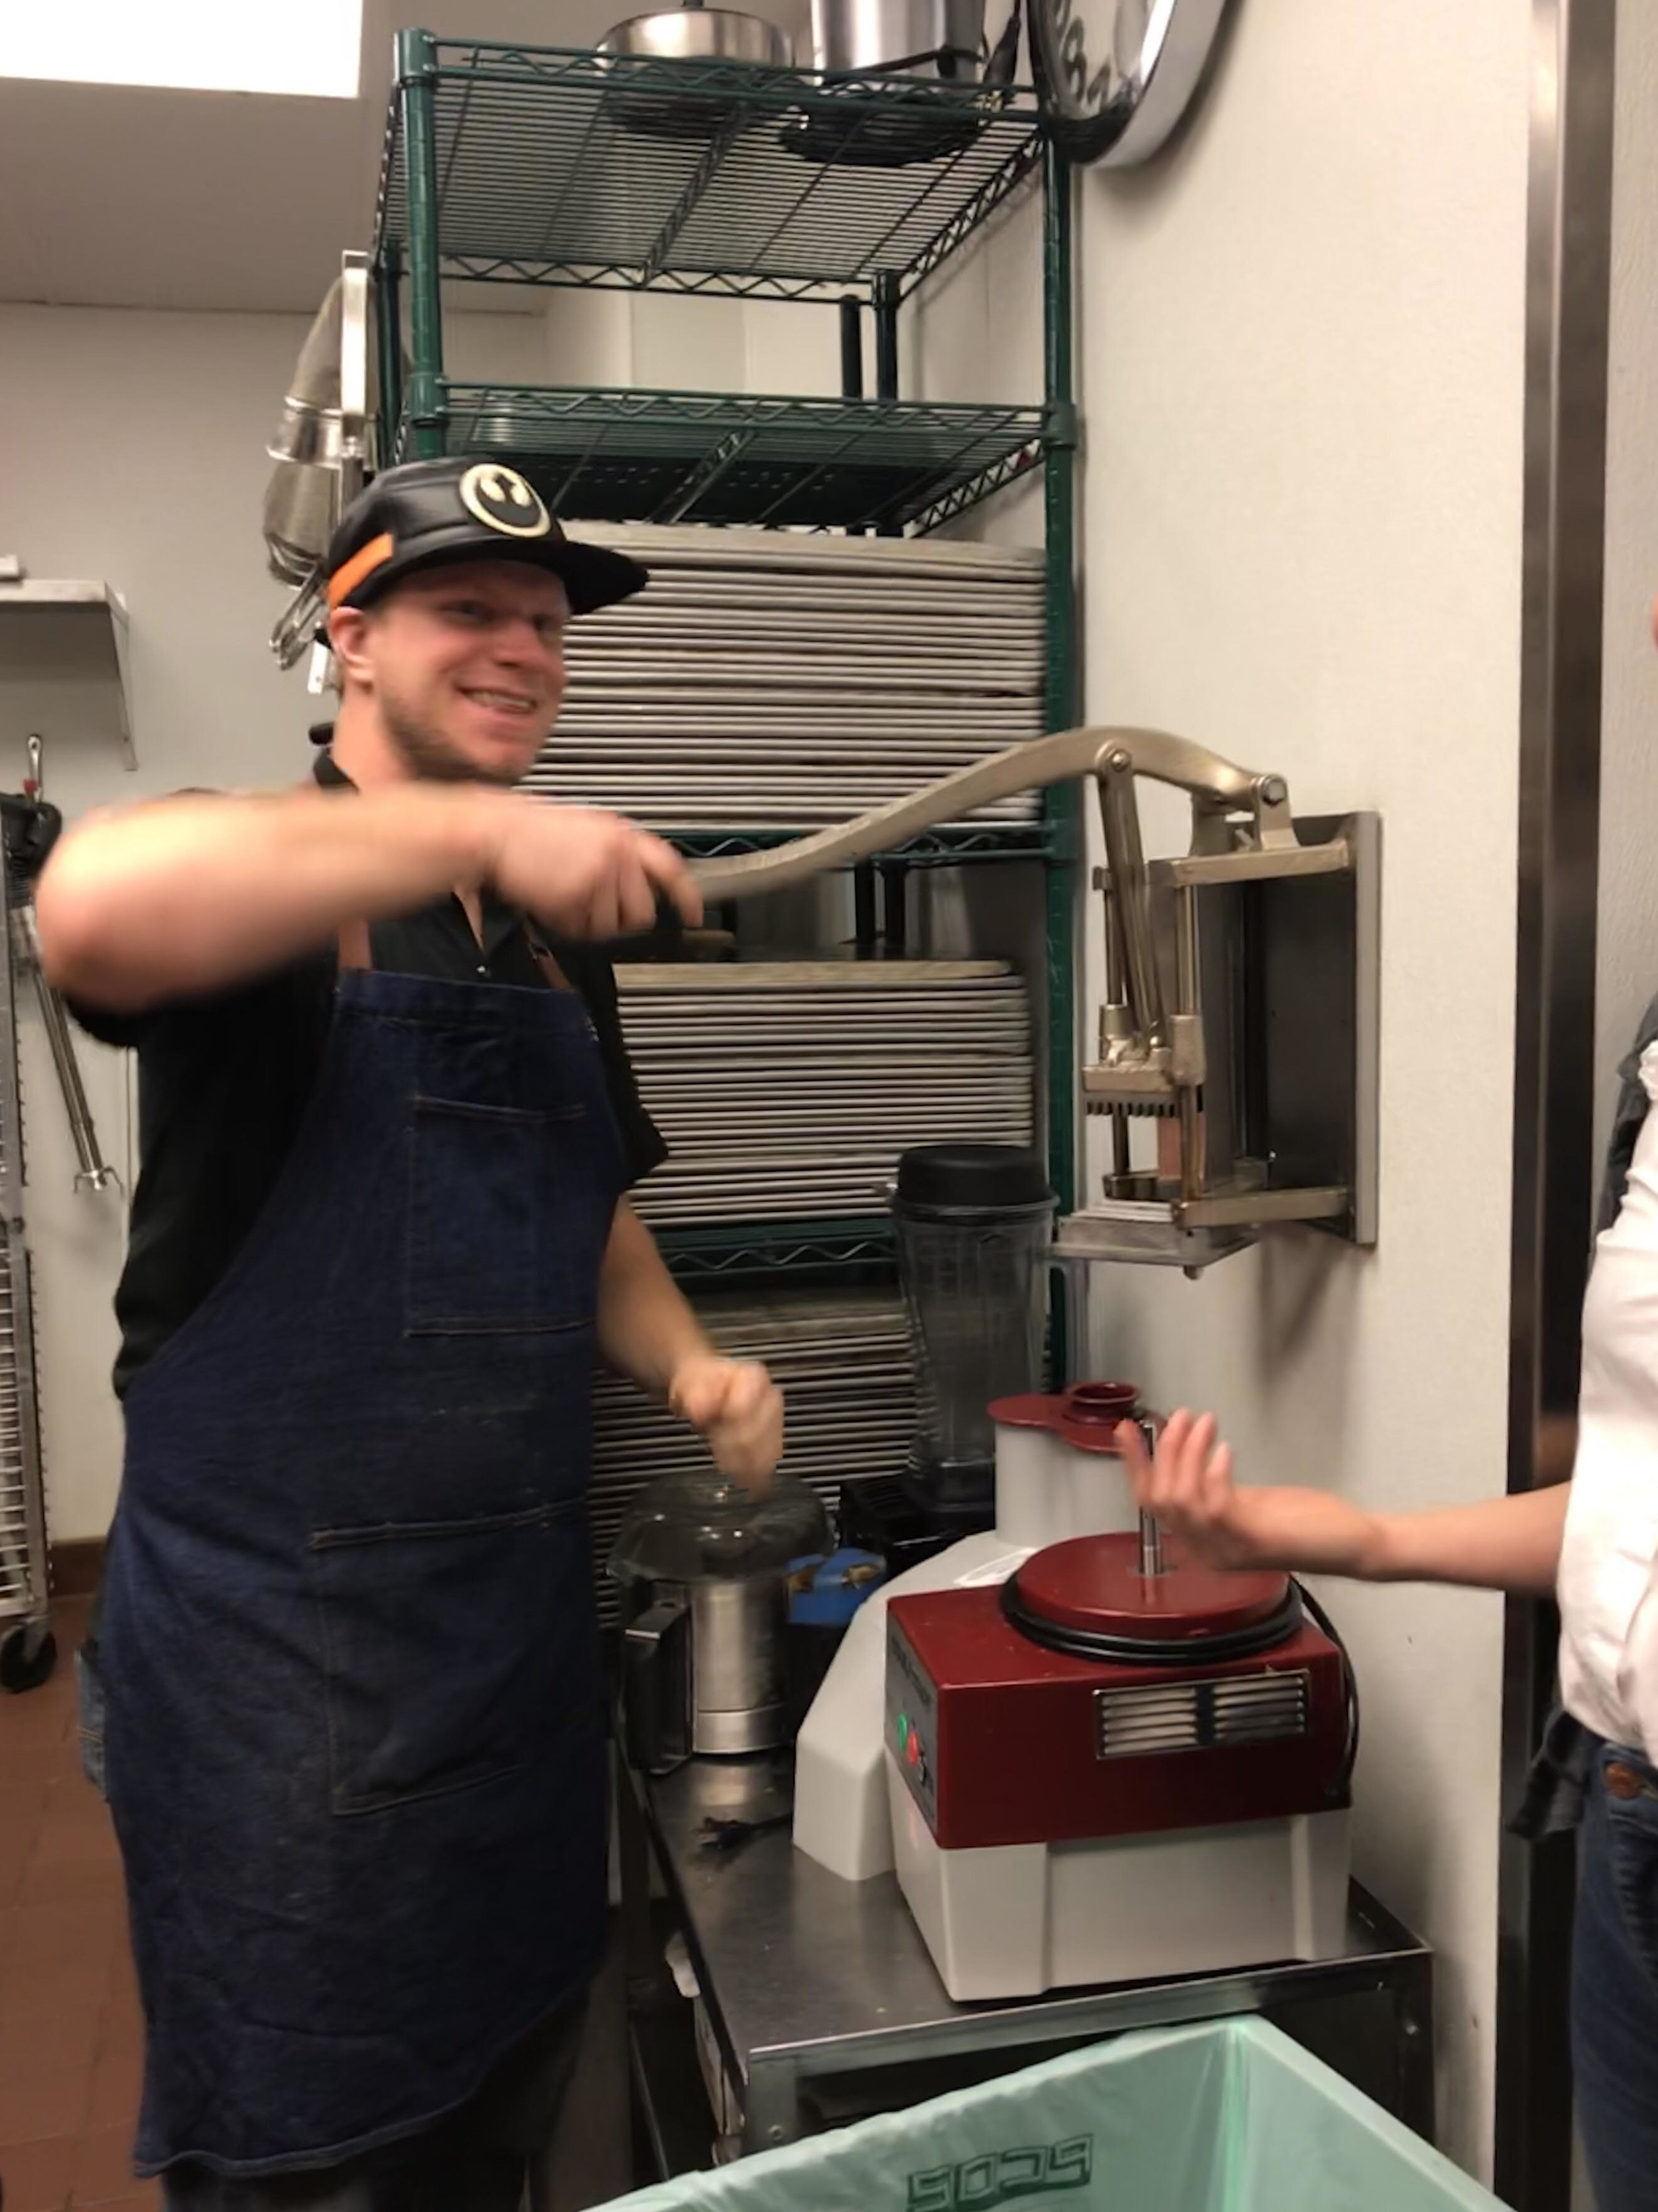 The next time you stop in, you might notice Chef Dan, working behind the scenes or in the kitchen to whip up whatever delectable menu item you order that day. Fun fact: his favorite kitchen tool is this fry cutter.